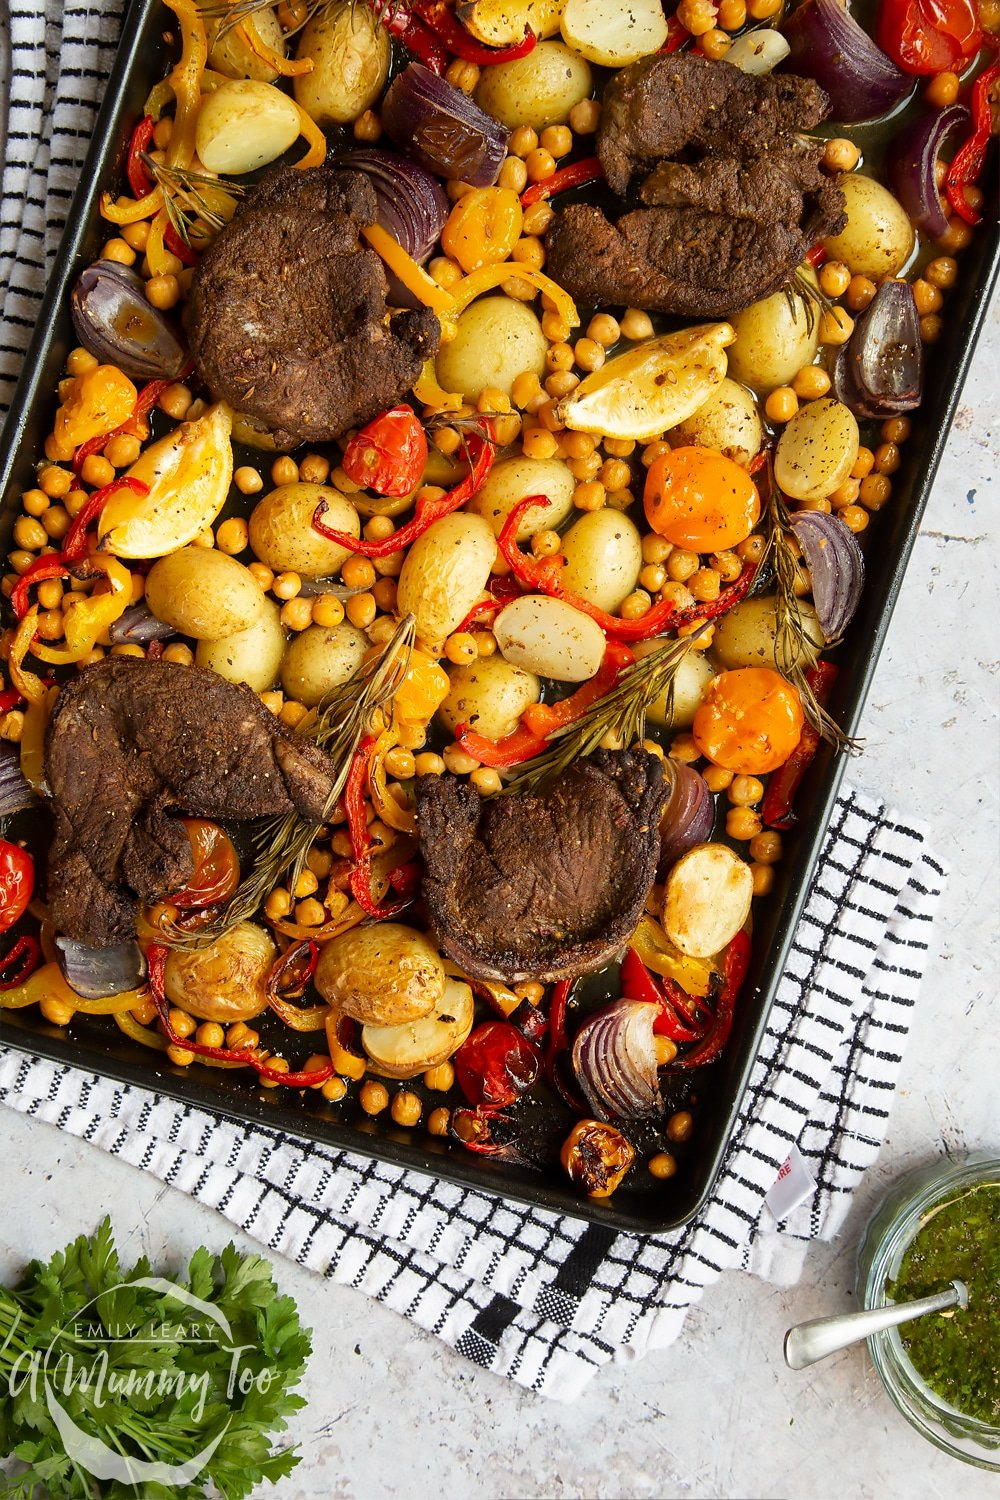 A lamb steak and veg sheet pan meal fresh from the oven